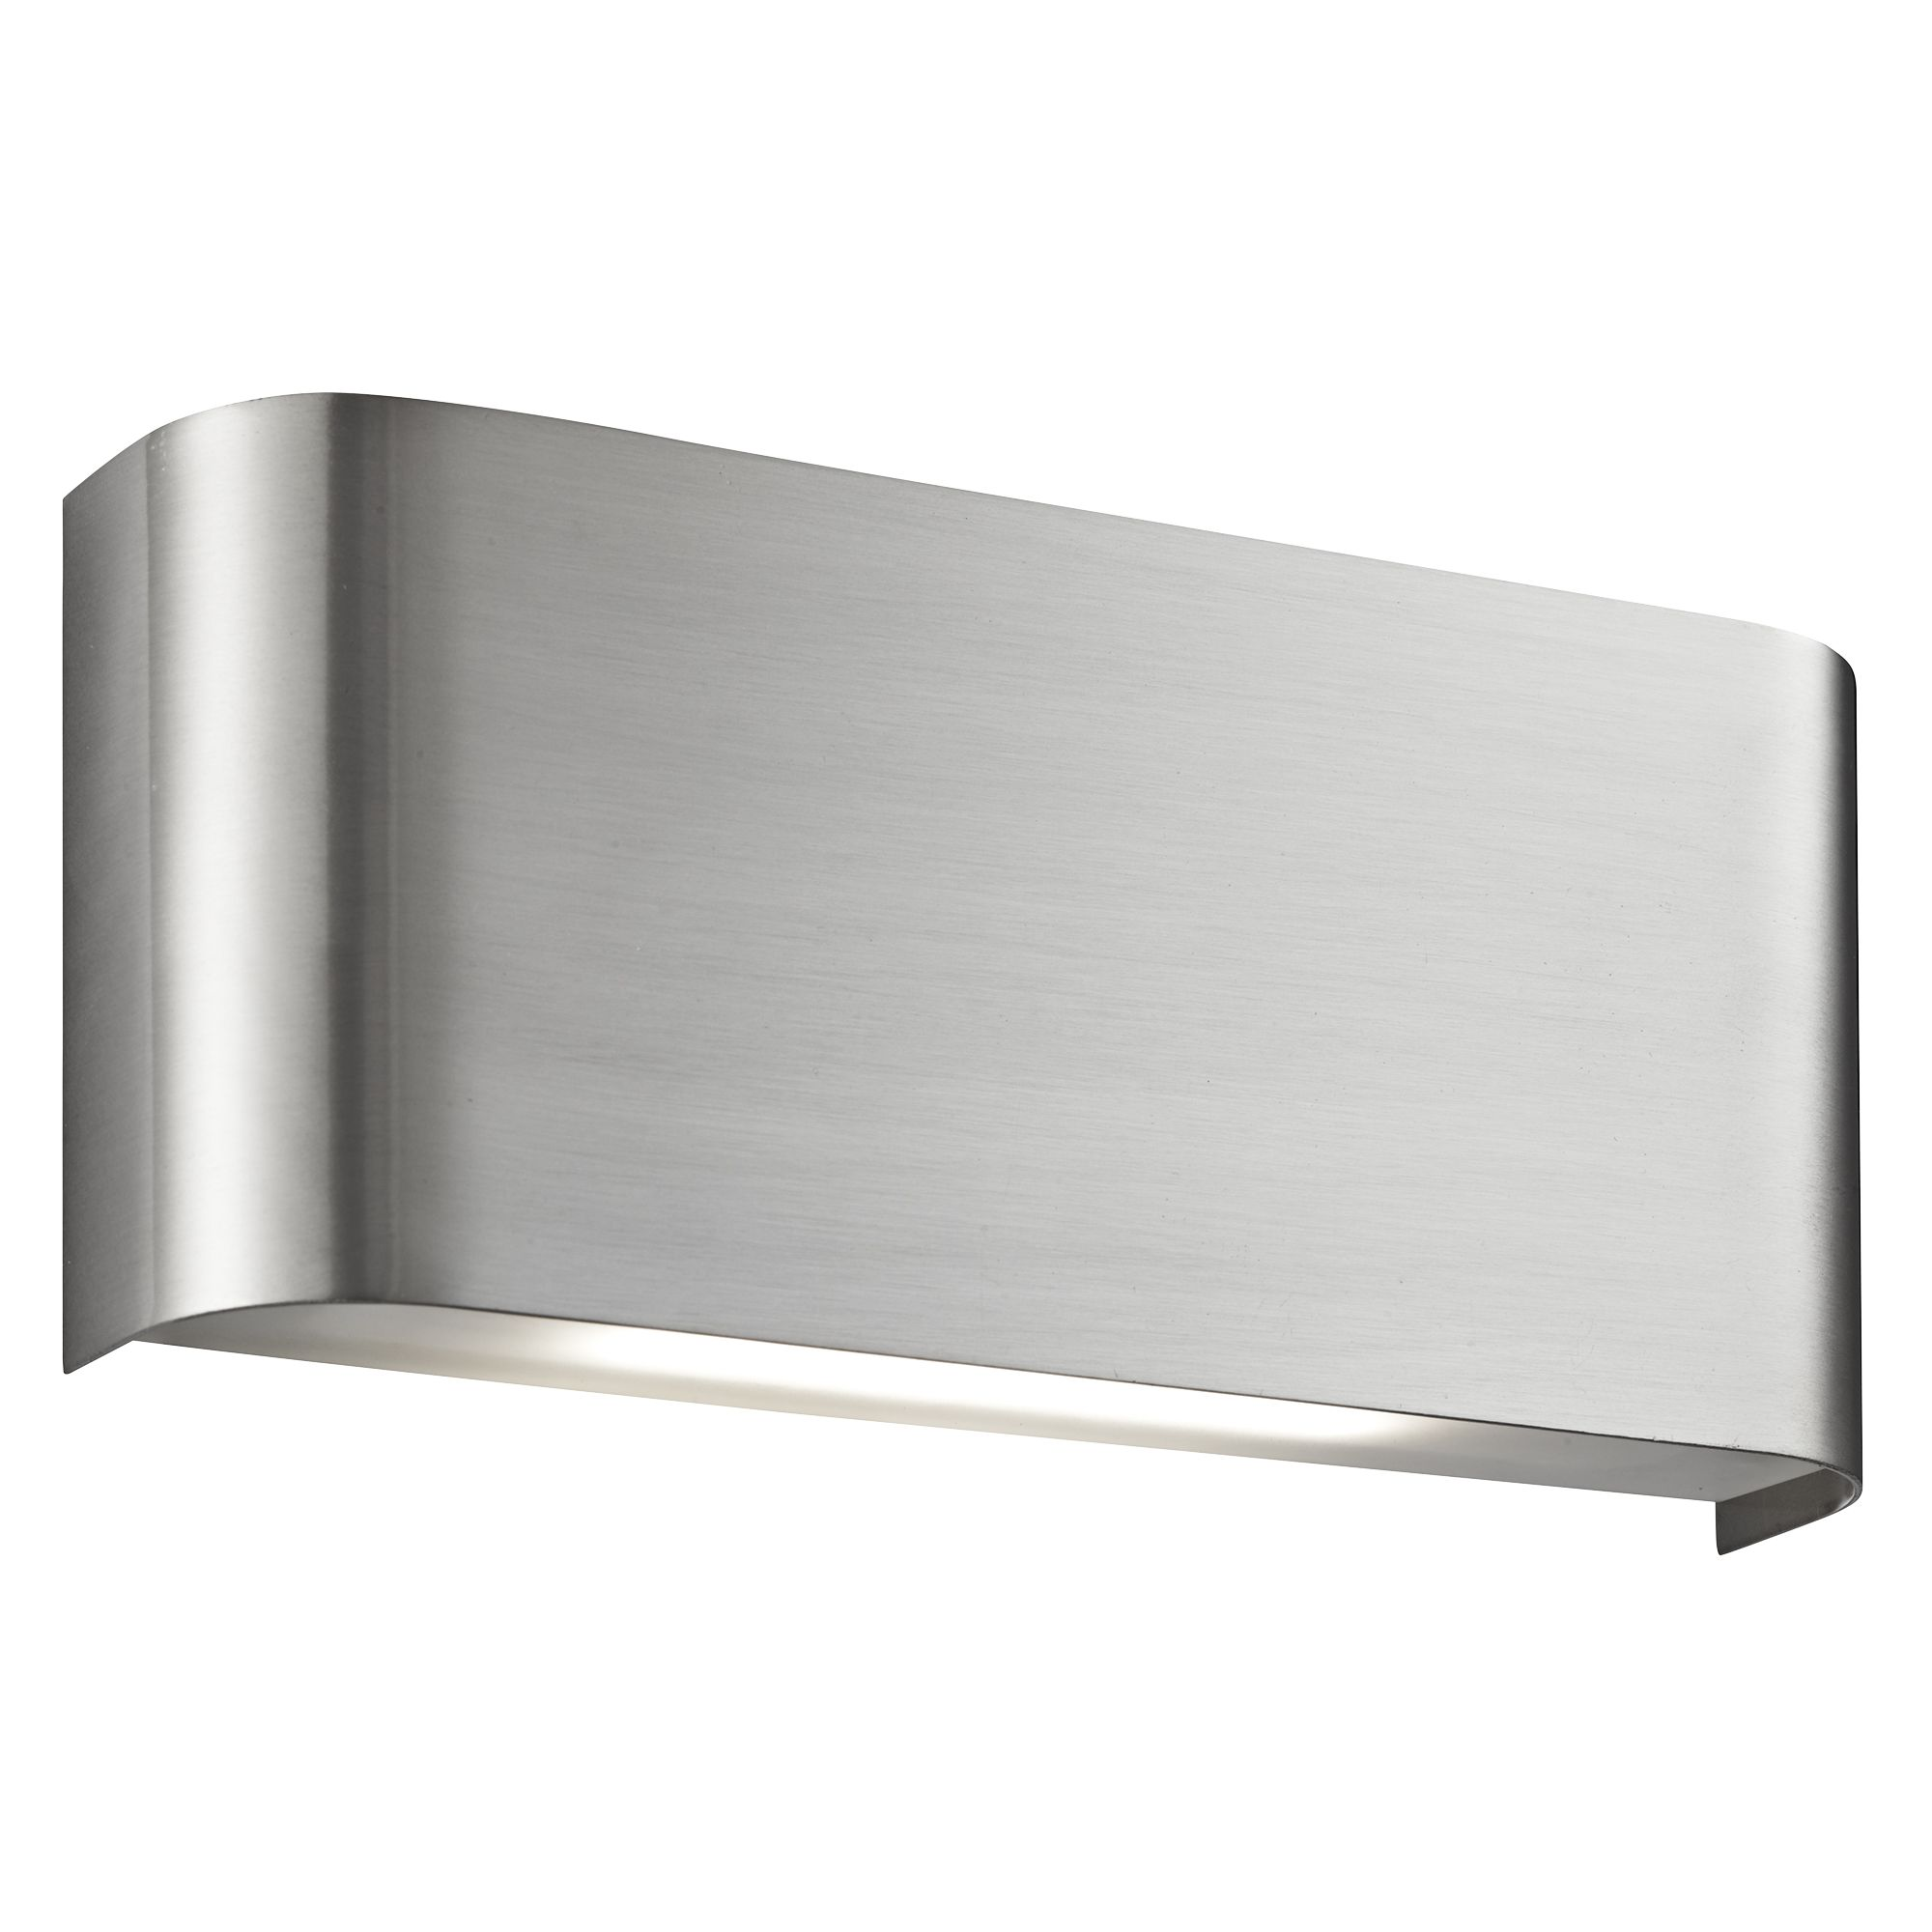 Match Box Satin Silver Oblong Curved Wall Light With Up & Down 2 Light Led